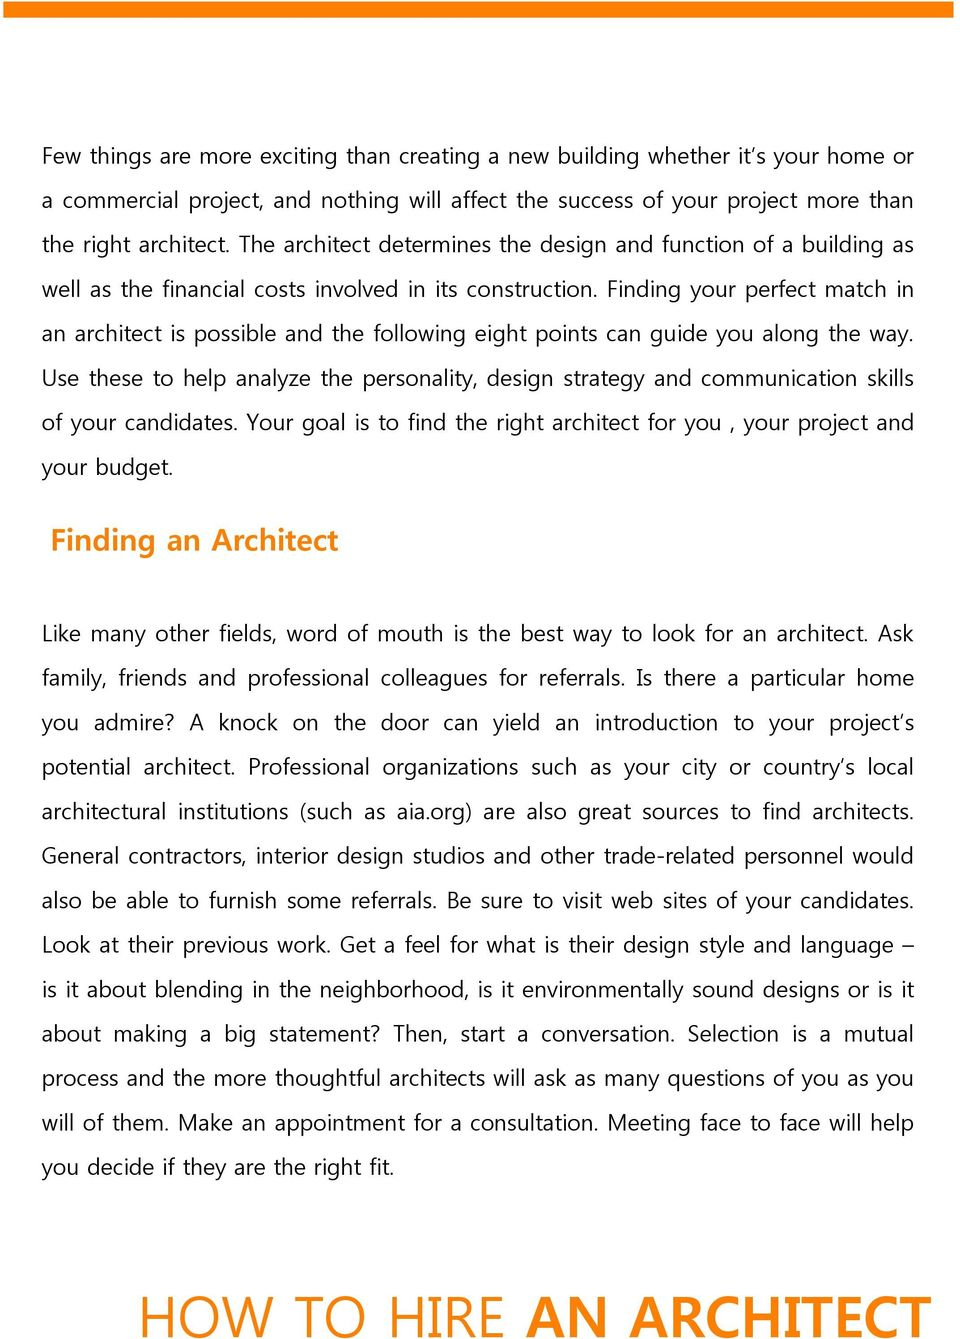 Finding your perfect match in an architect is possible and the following eight points can guide you along the way.